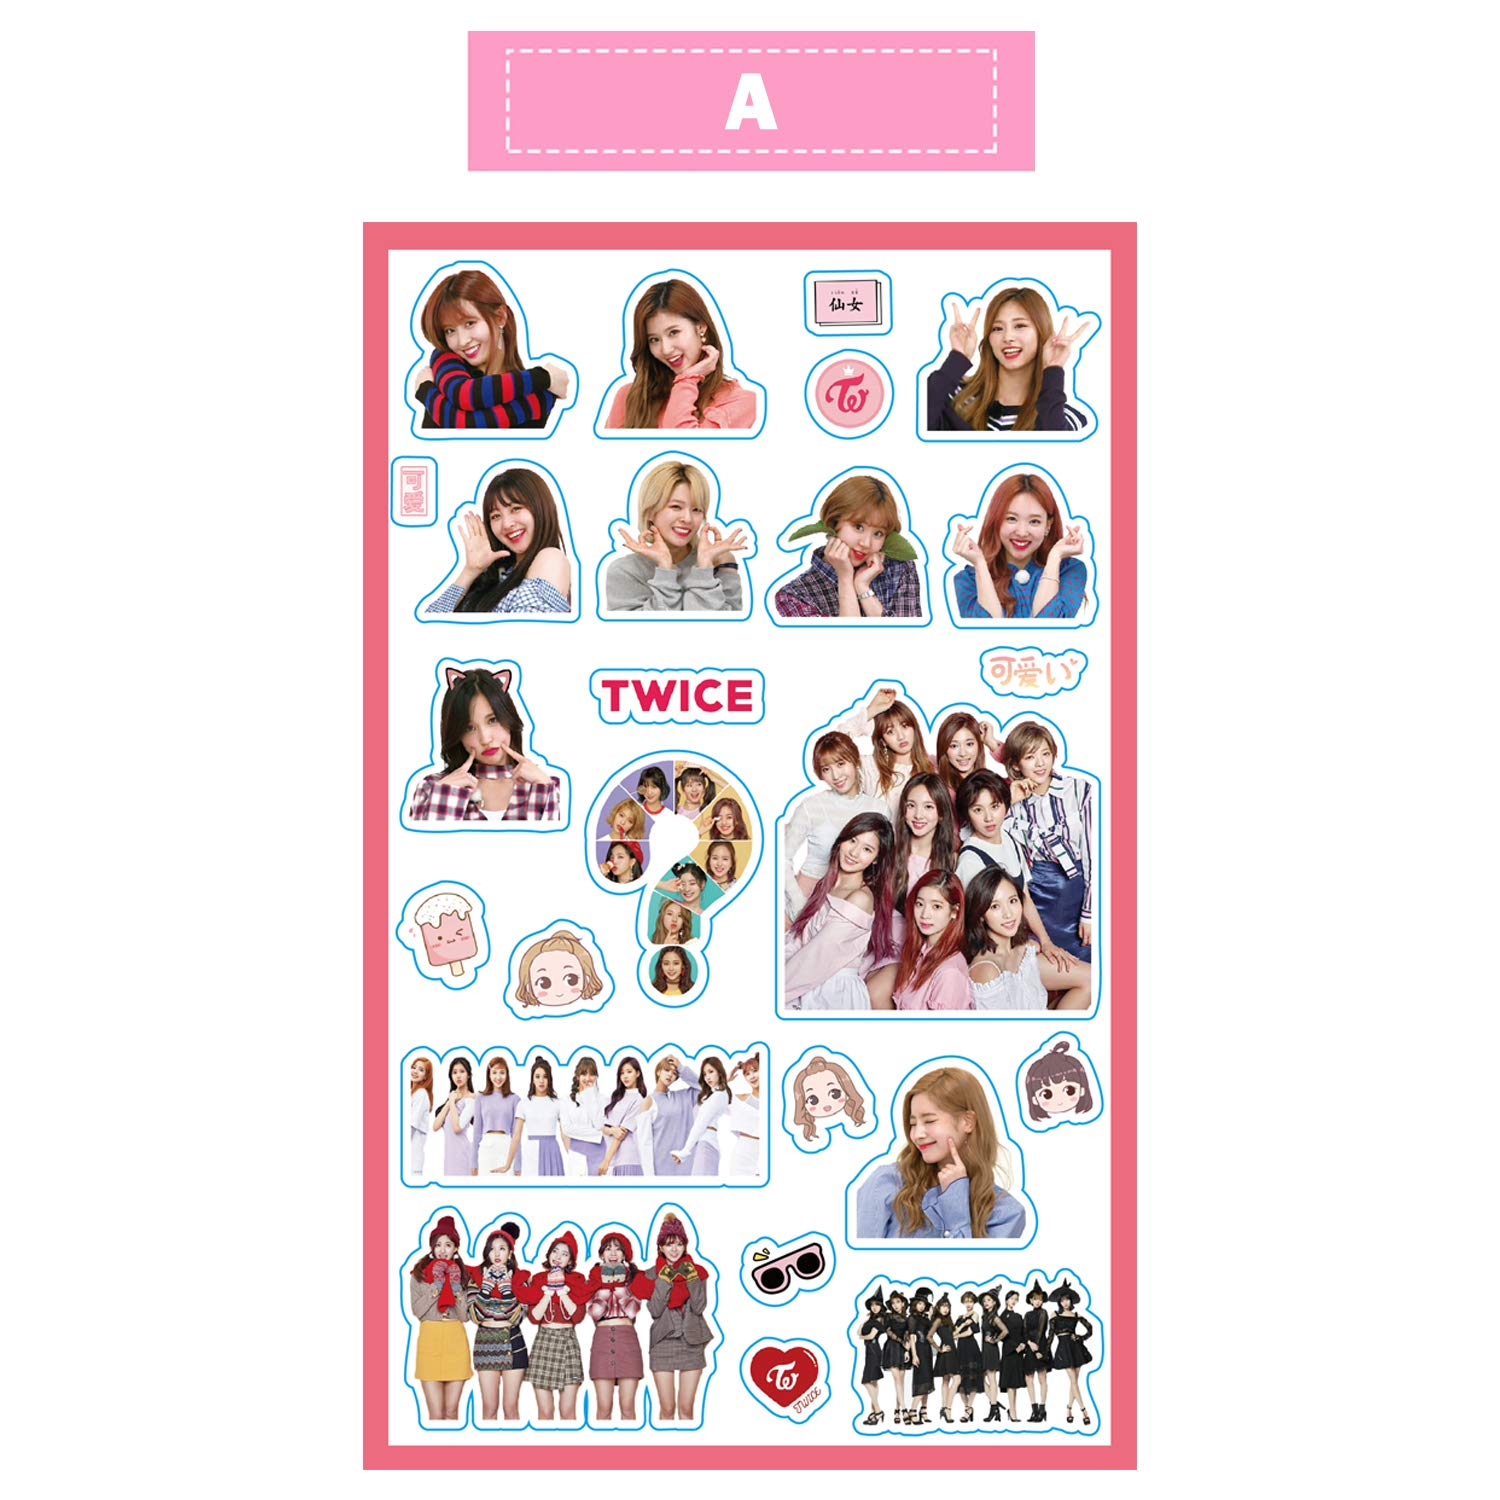 Twice-A, 2pcs Twice Kpop Cute Stickers for Laptop Car Decoration Cellphone Decal